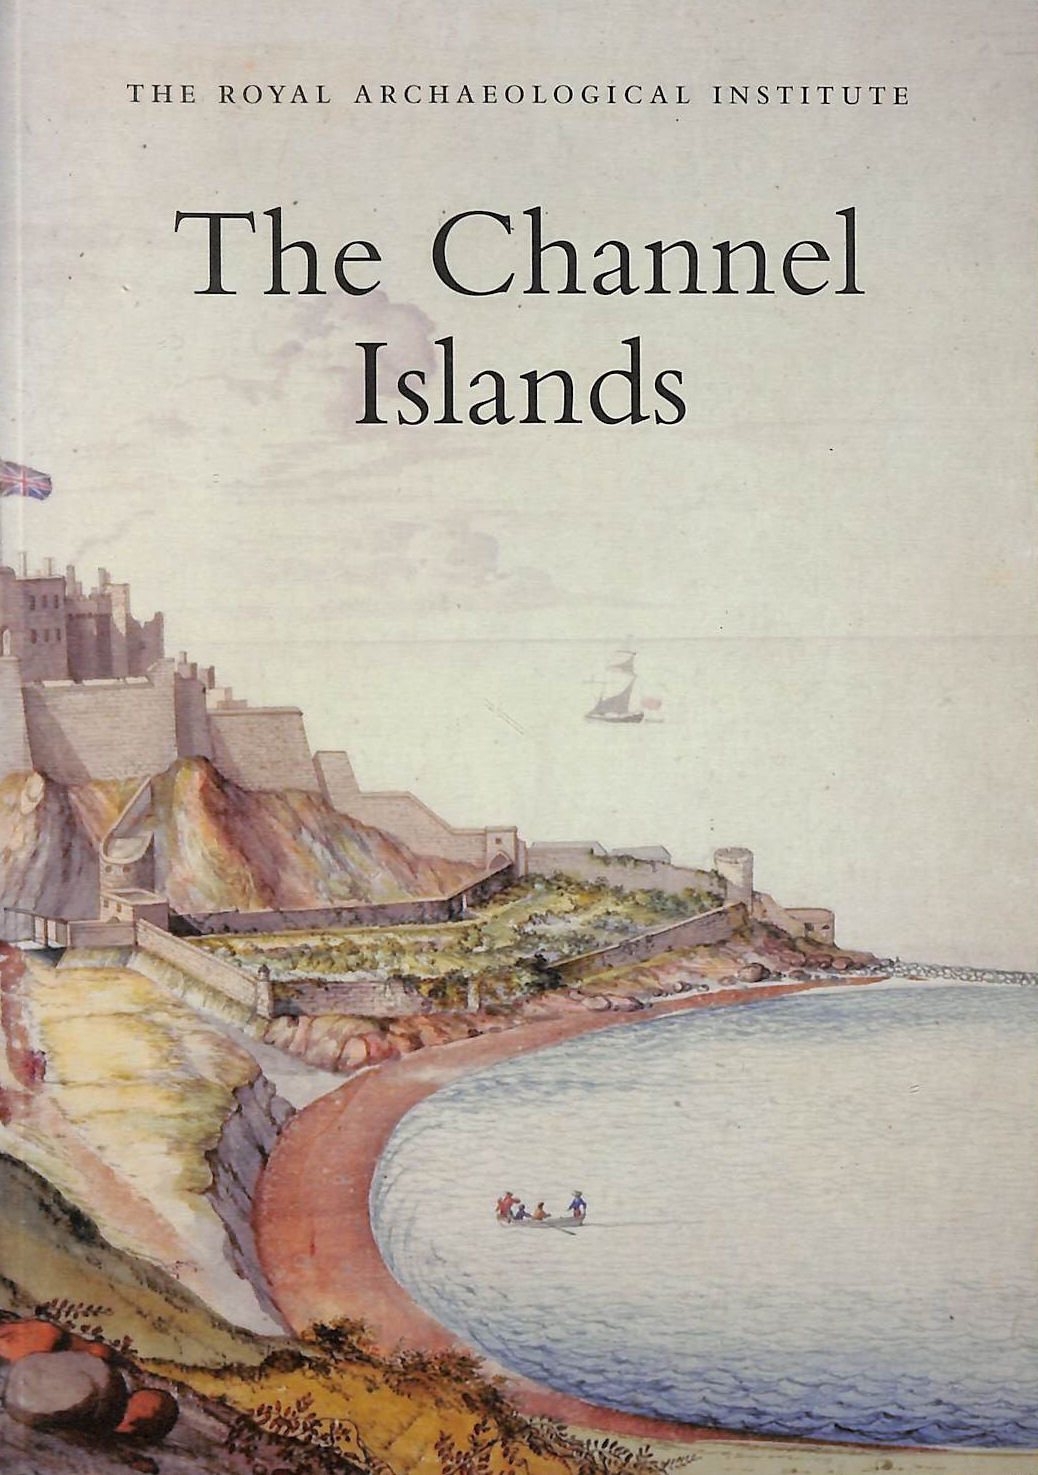 Image for The Channel Islands: Report and Proceedings of the 150th Summer Meeting of the Royal Archaeological Institute in 2004